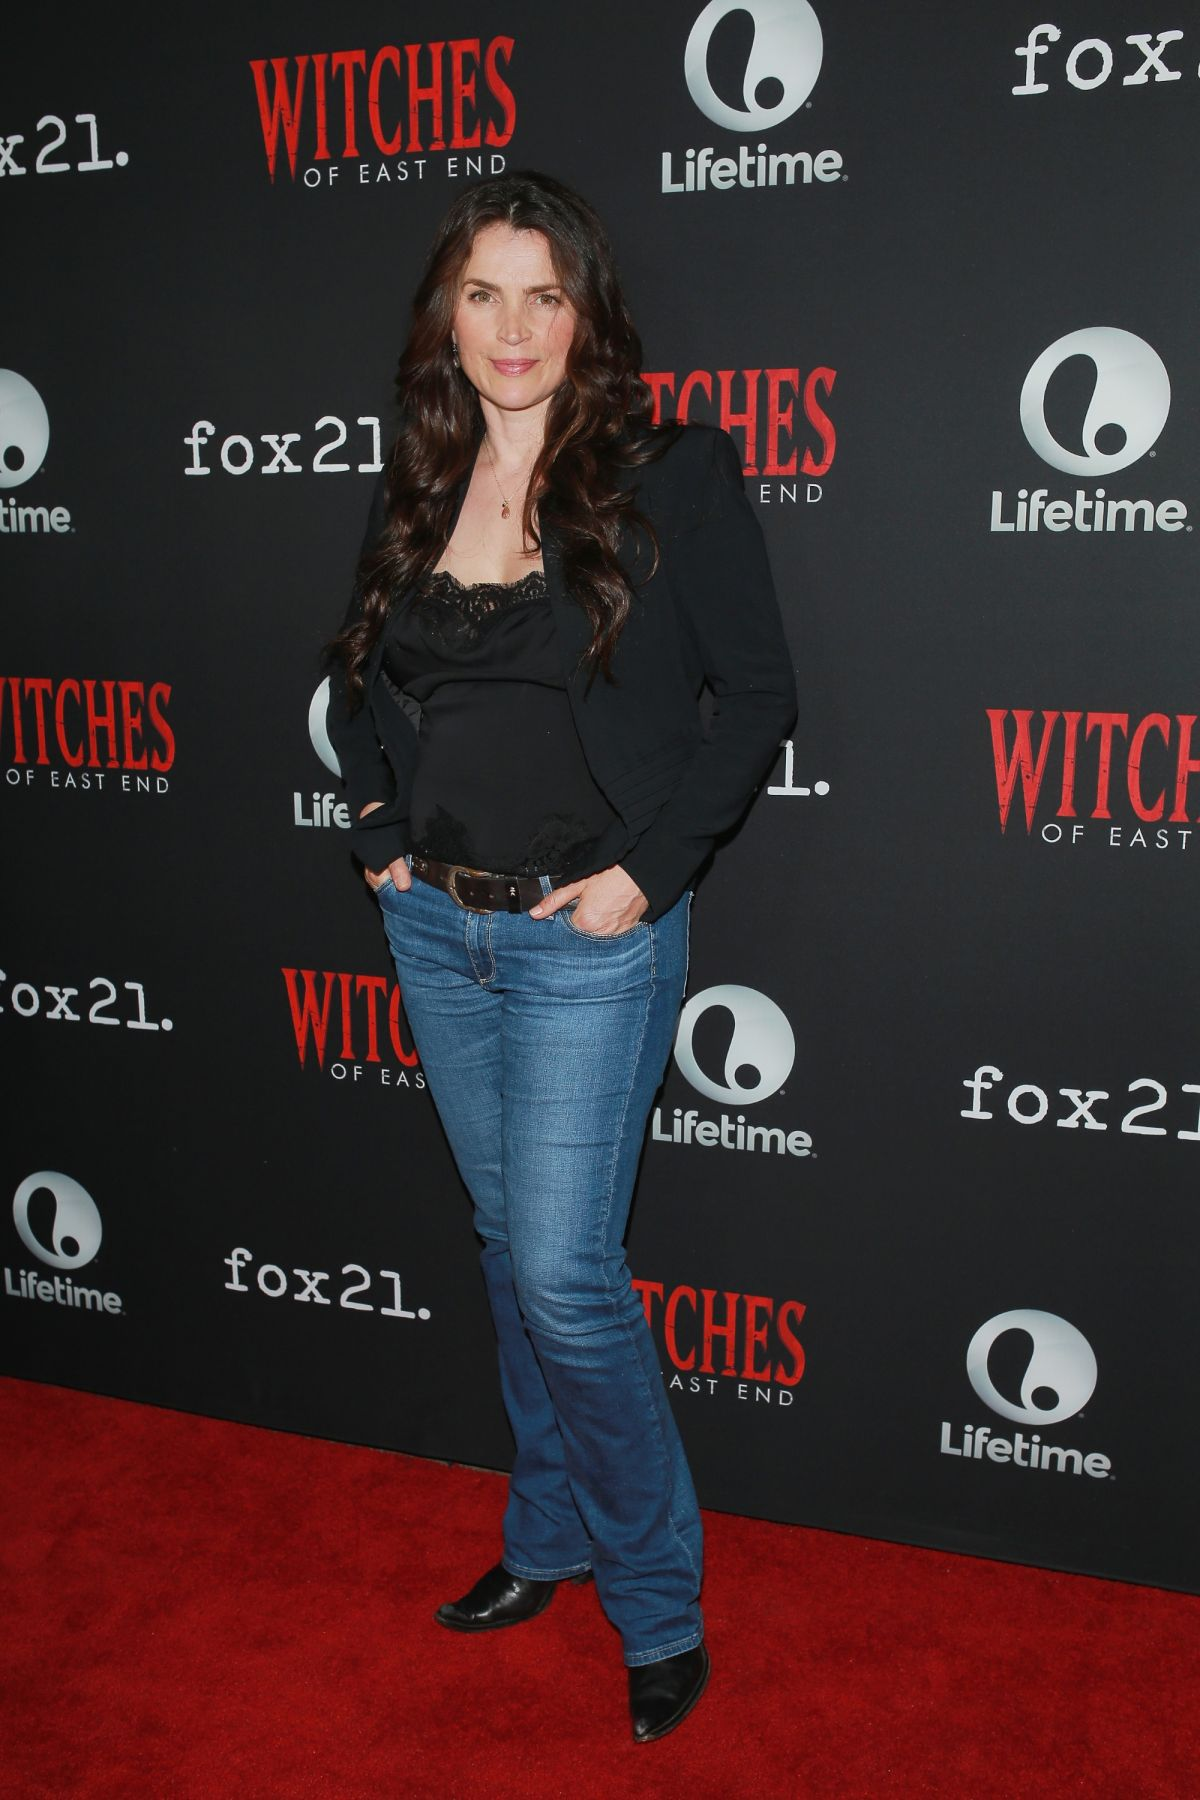 JULIA ORMOND at Witches of East End Panel at Comic-con in San Diego